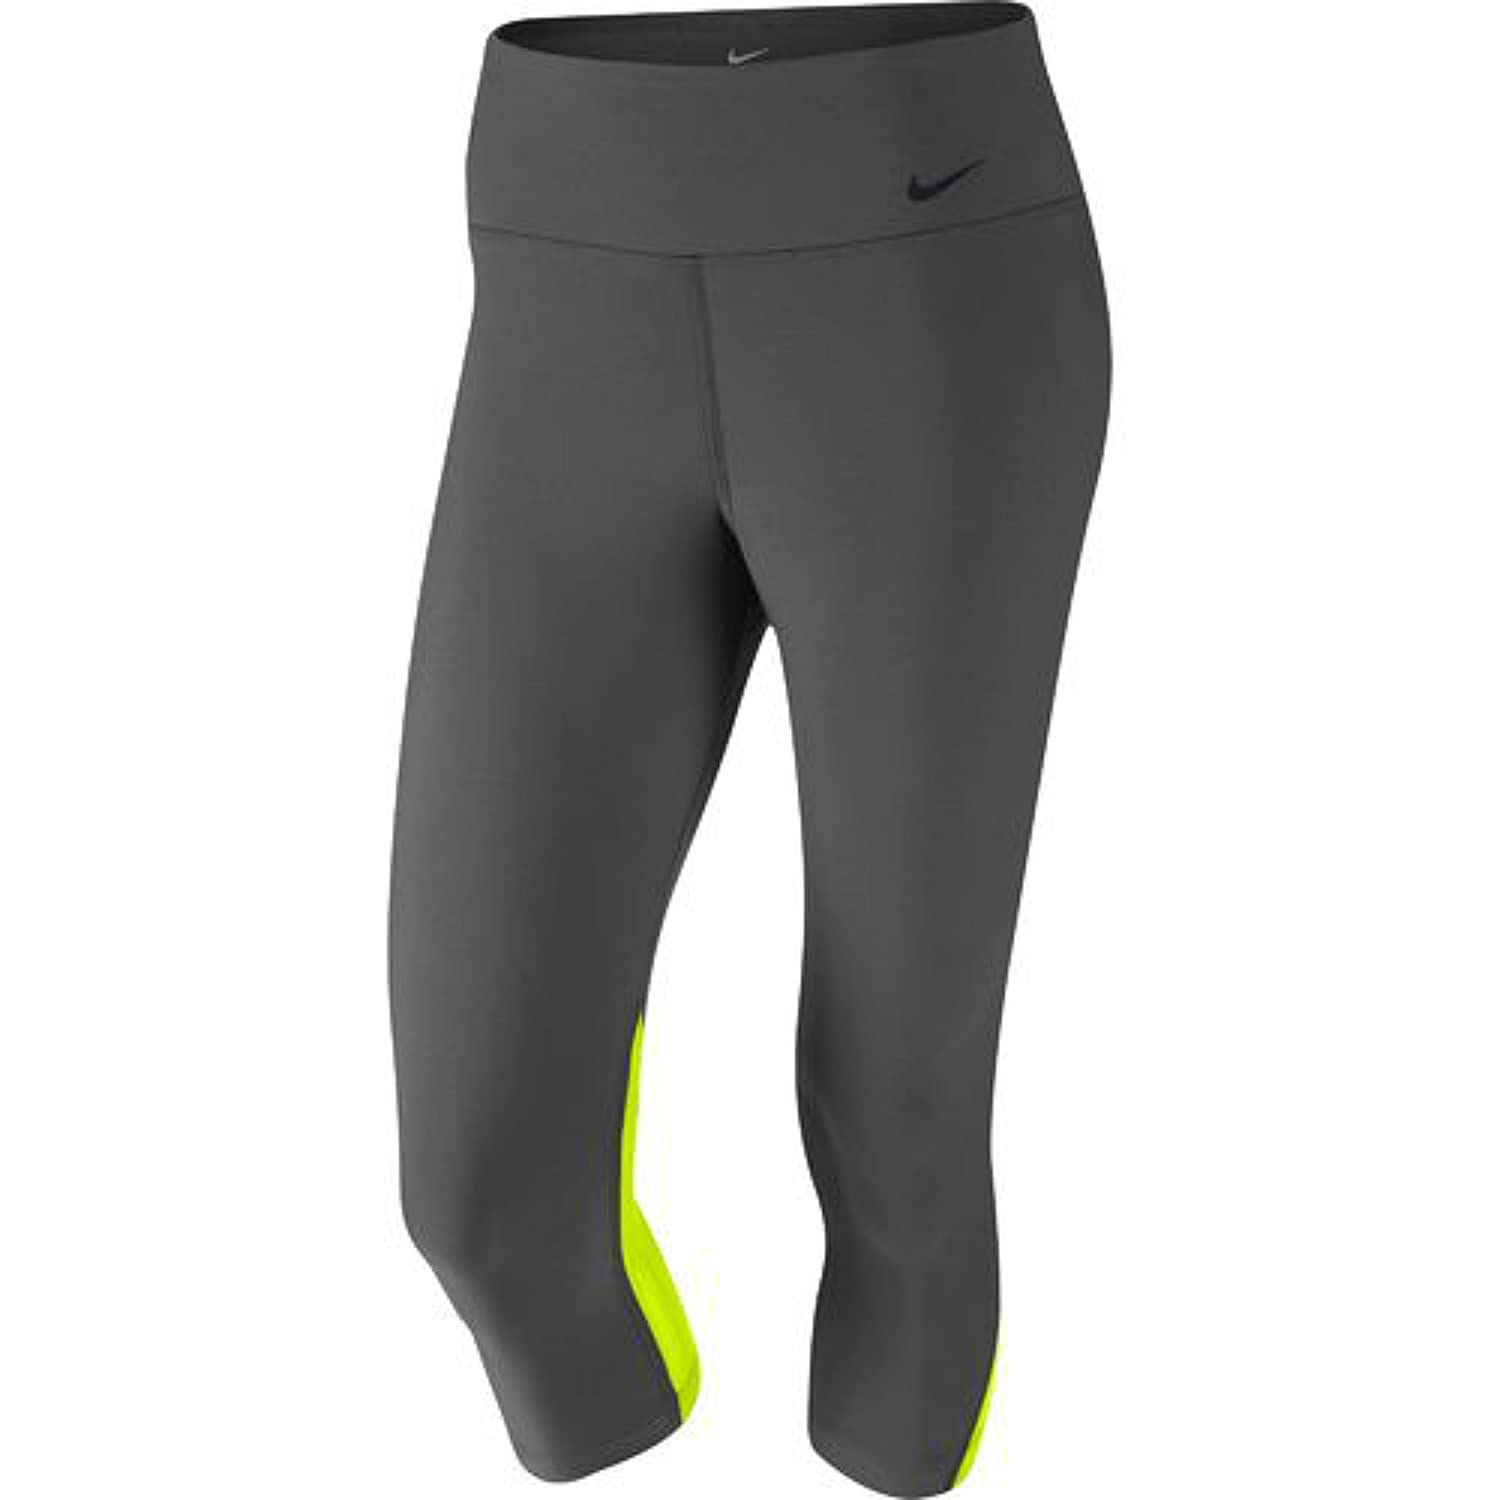 : Women's Nike Legend 2.0 Poly Tight Fit Training